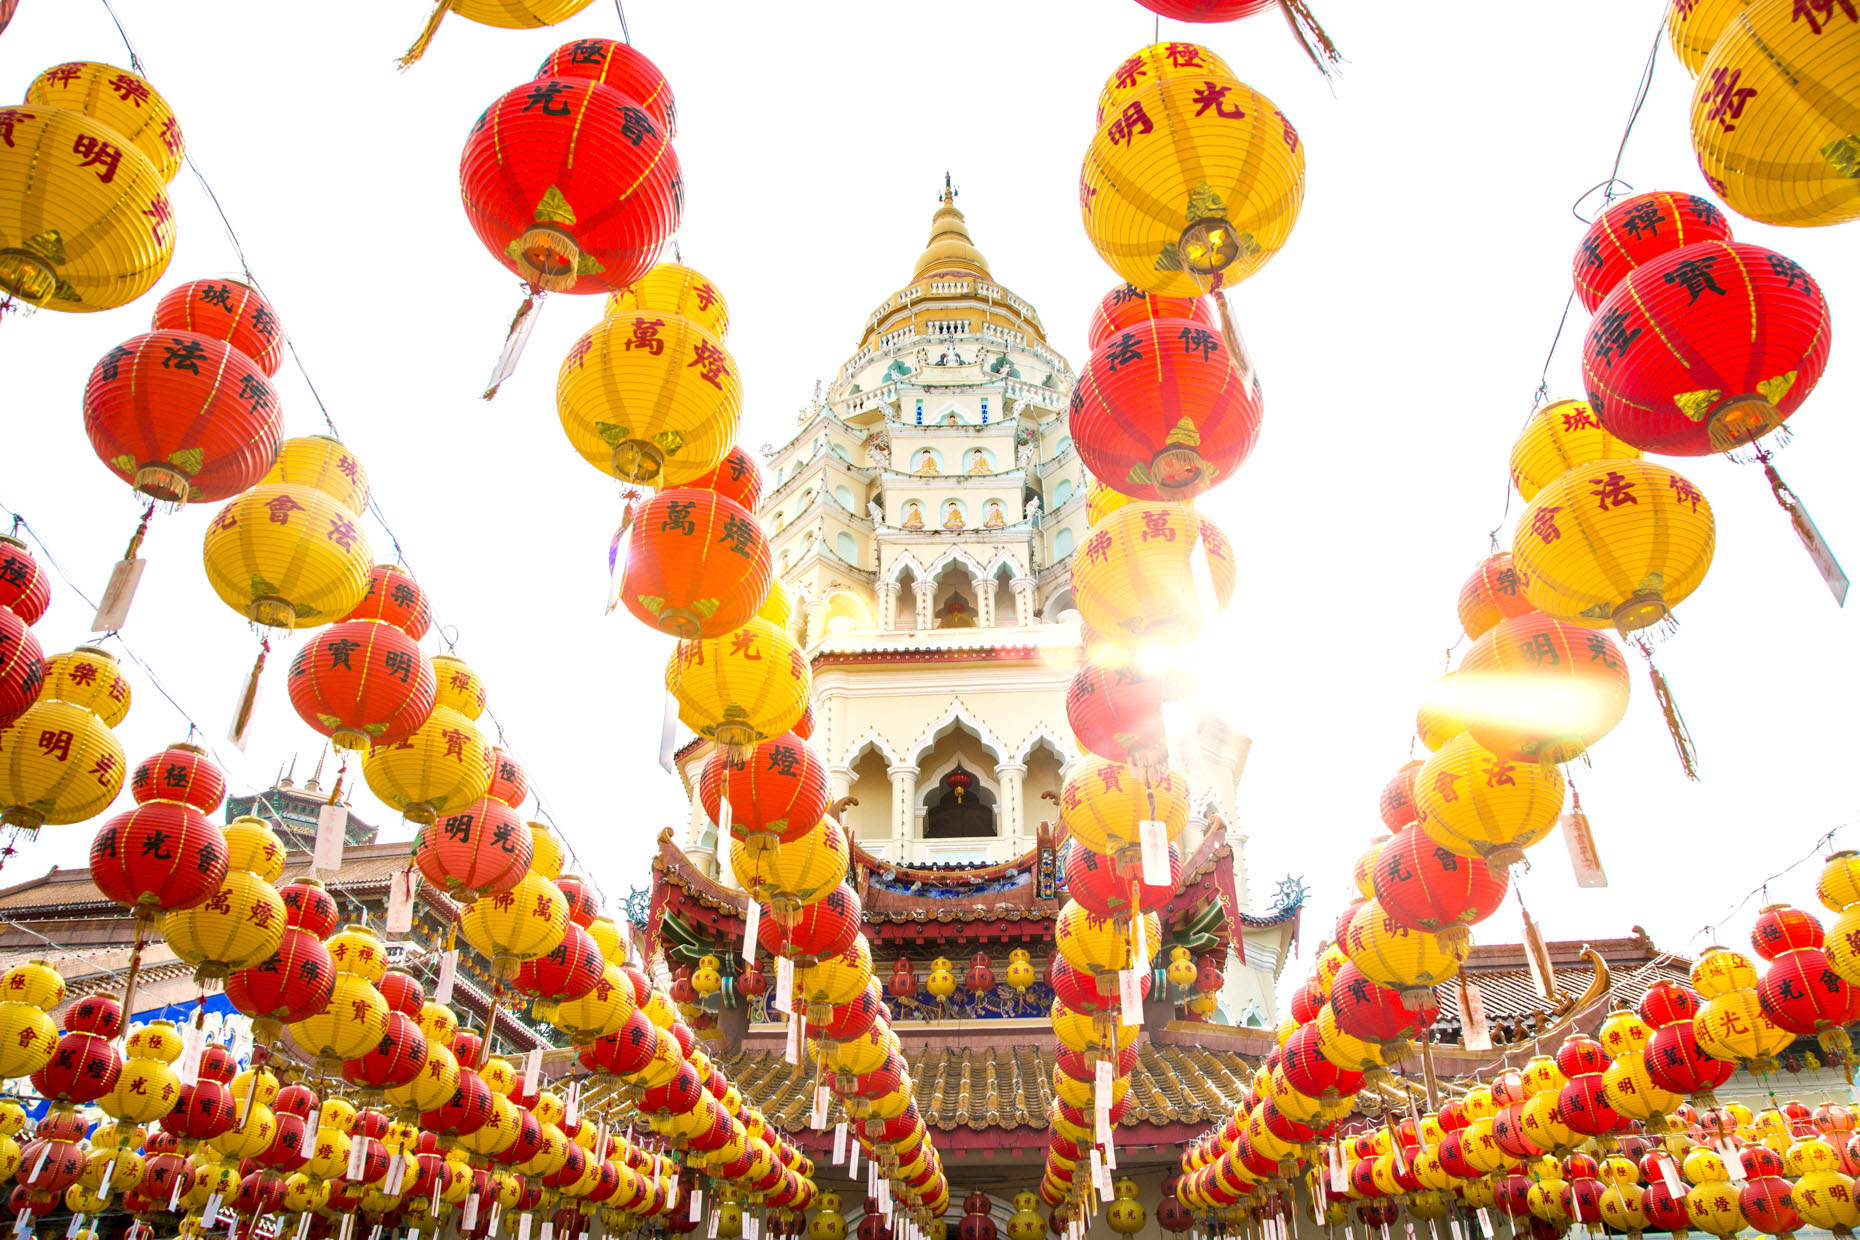 Temple with strings of yellow and red lanterns for Chinese New Year celebrations